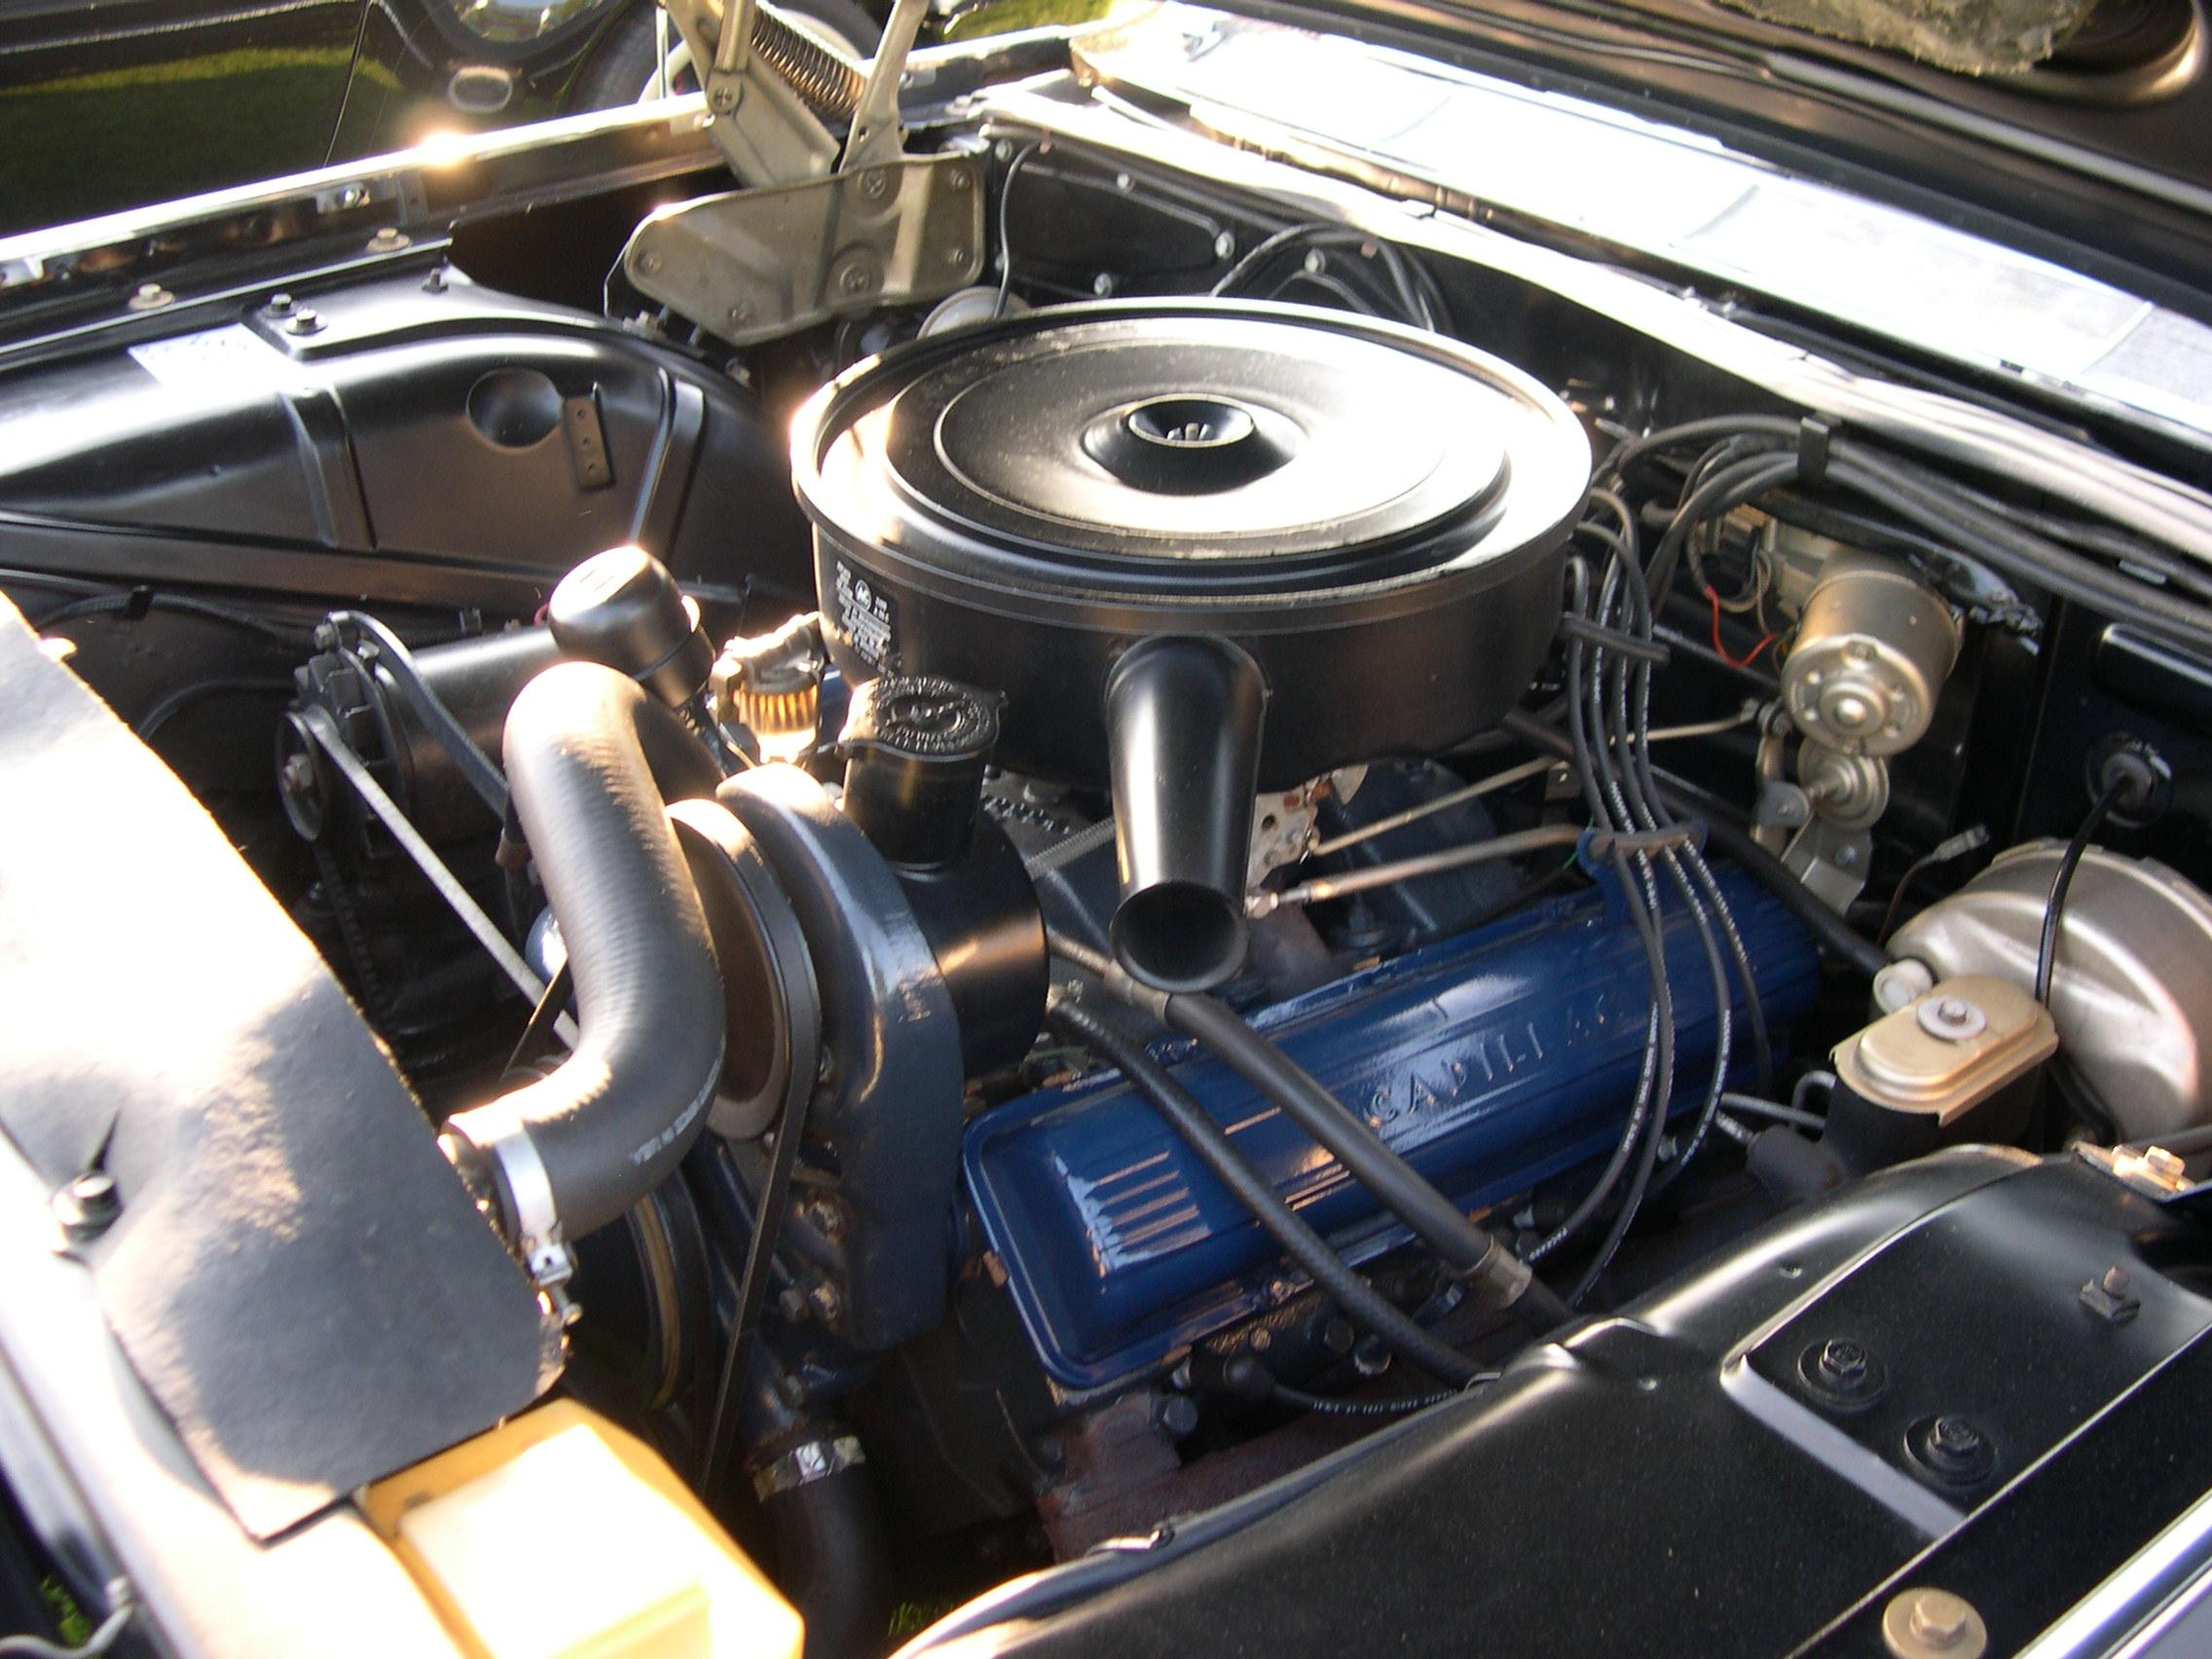 1962 Cadillac 390 Engine Diagram Anything Wiring Diagrams Ford Truck File Series 62 Wikimedia Commons Rh Org 427